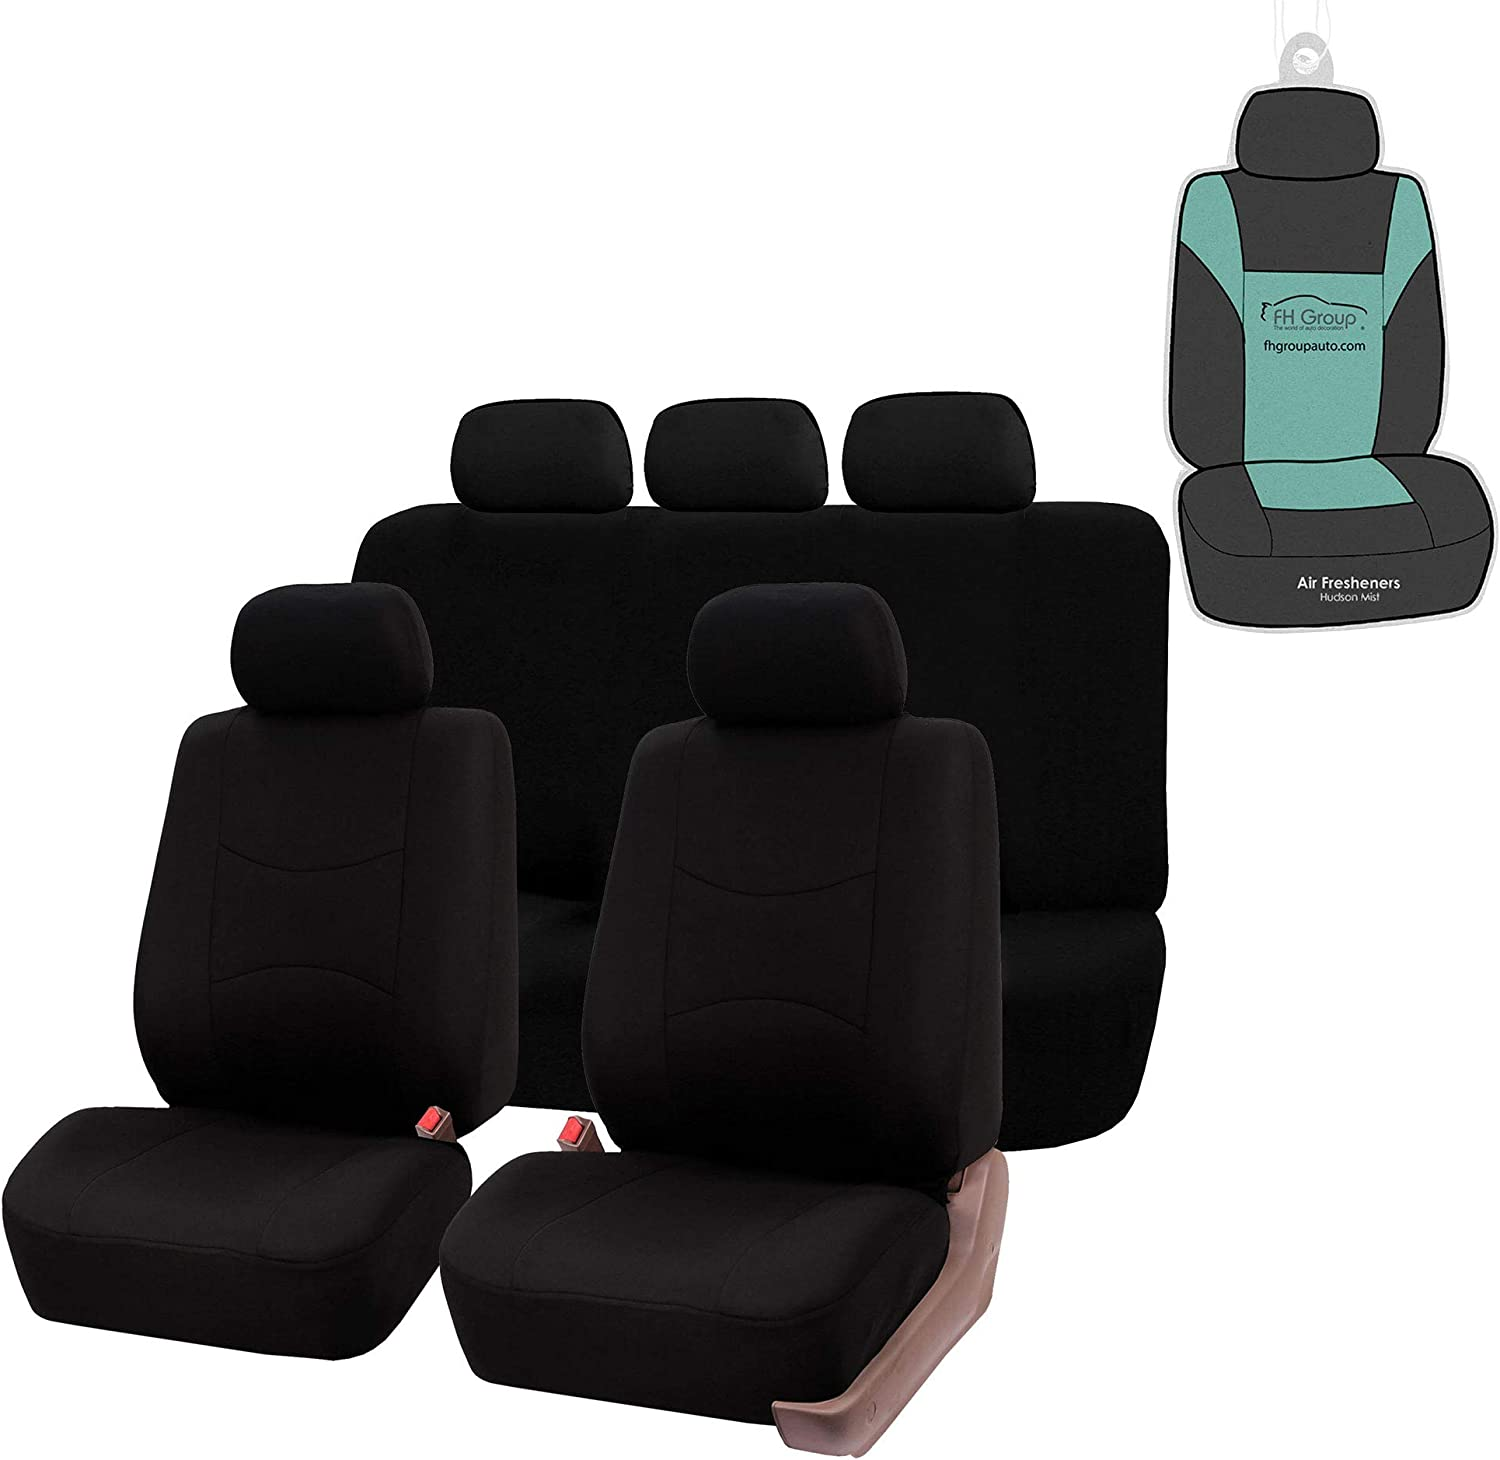 FH Group FB051115 Multifunctional Flat Cloth Seat Covers (Black) Full Set with Gift - Universal Fit for Trucks, SUVs, and Vans